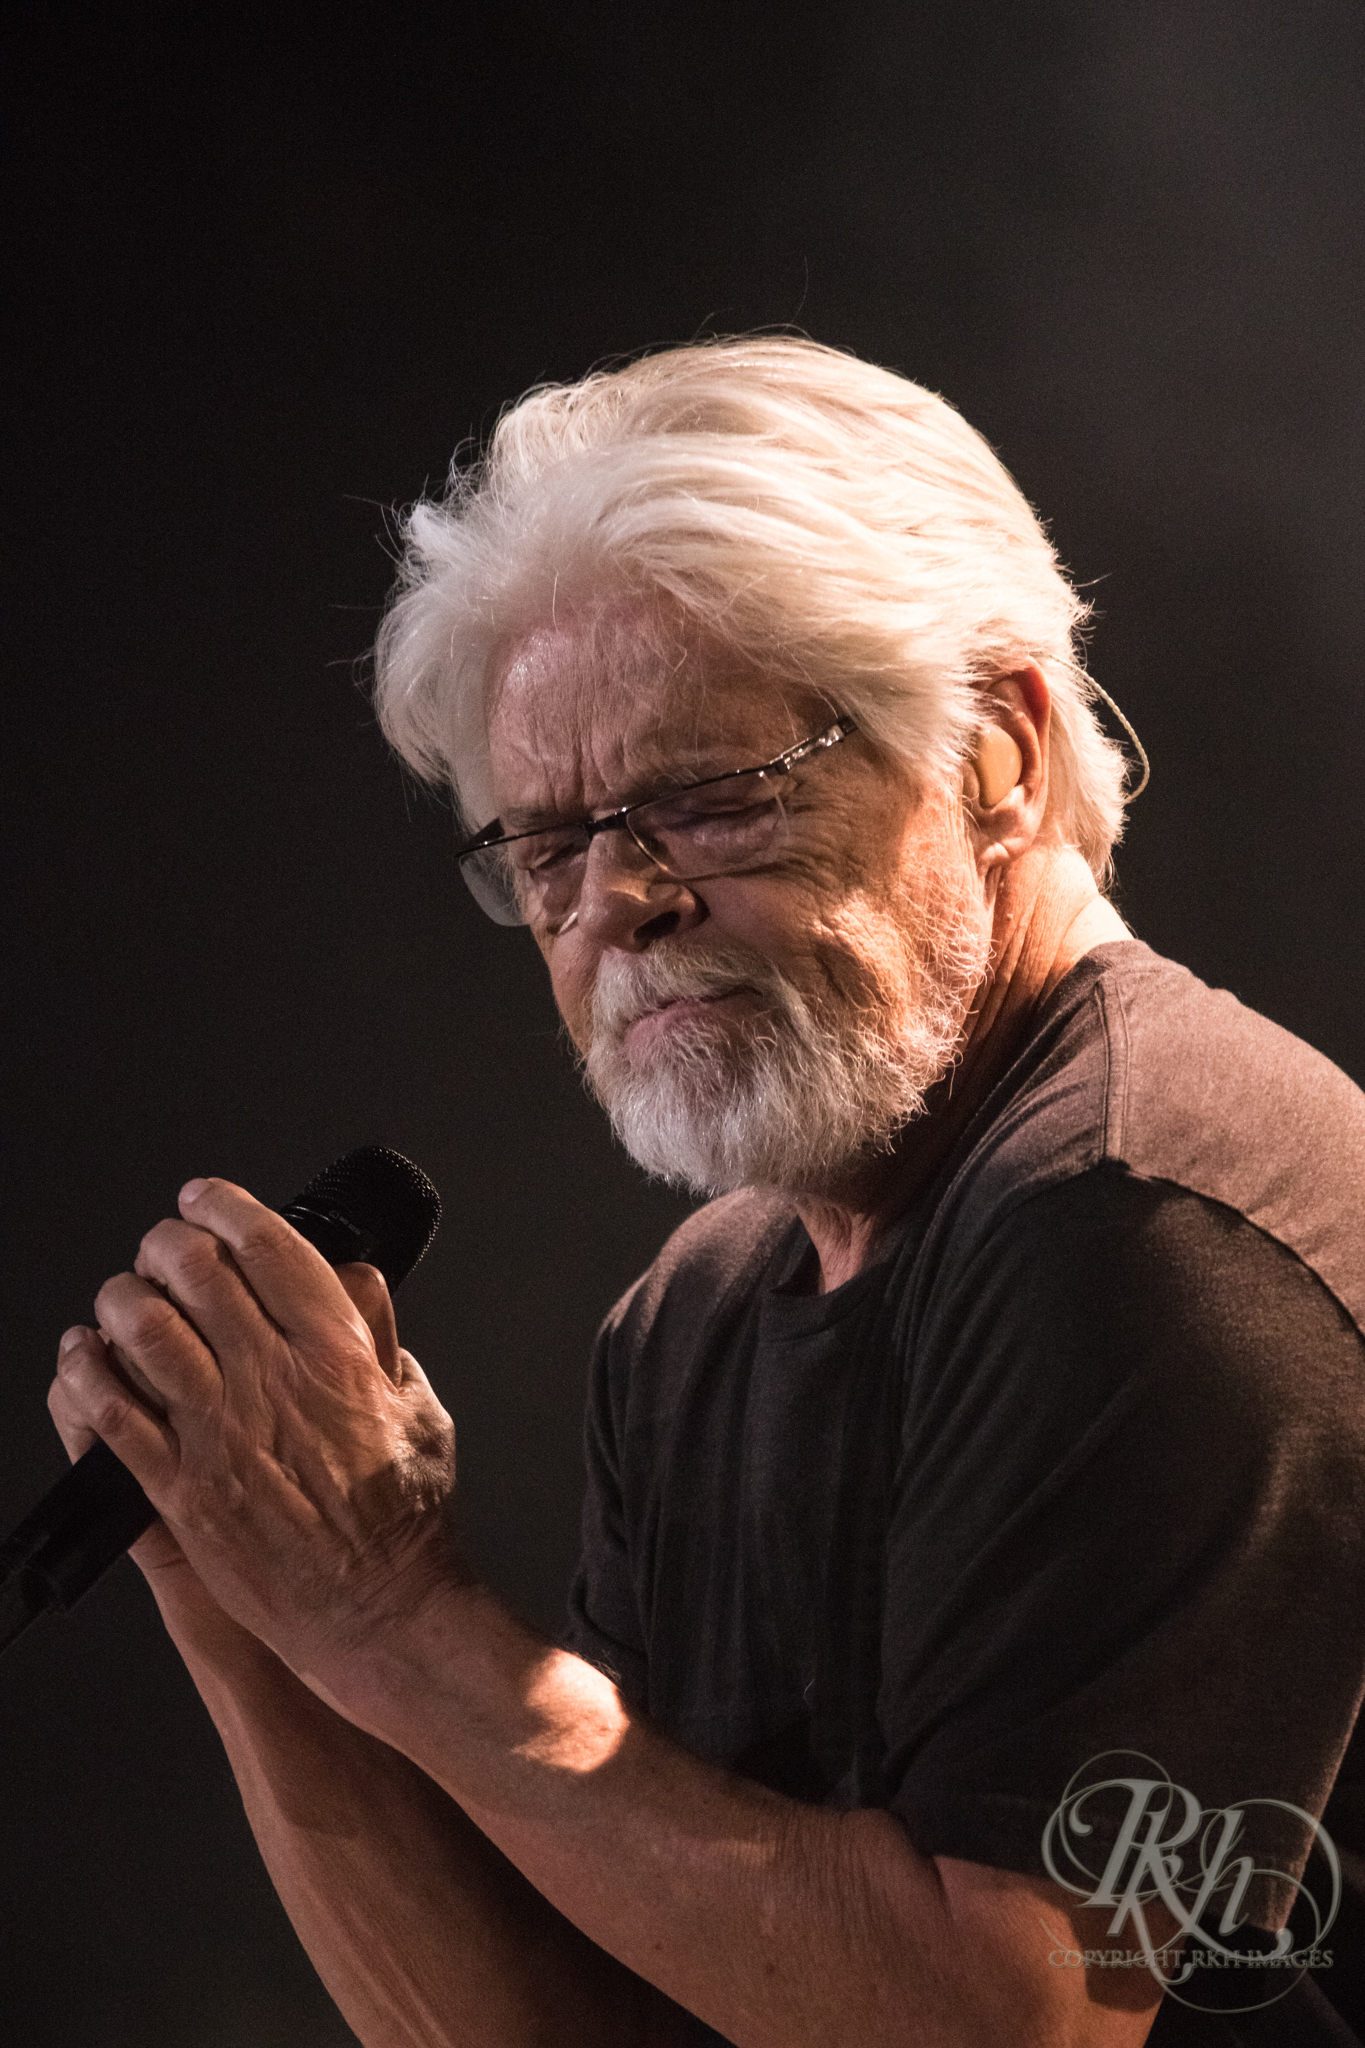 Bob Seger - Minnesota Concert Photographer - Xcel Energy Center - St. Paul - RKH Images  (4 of 7).jpg